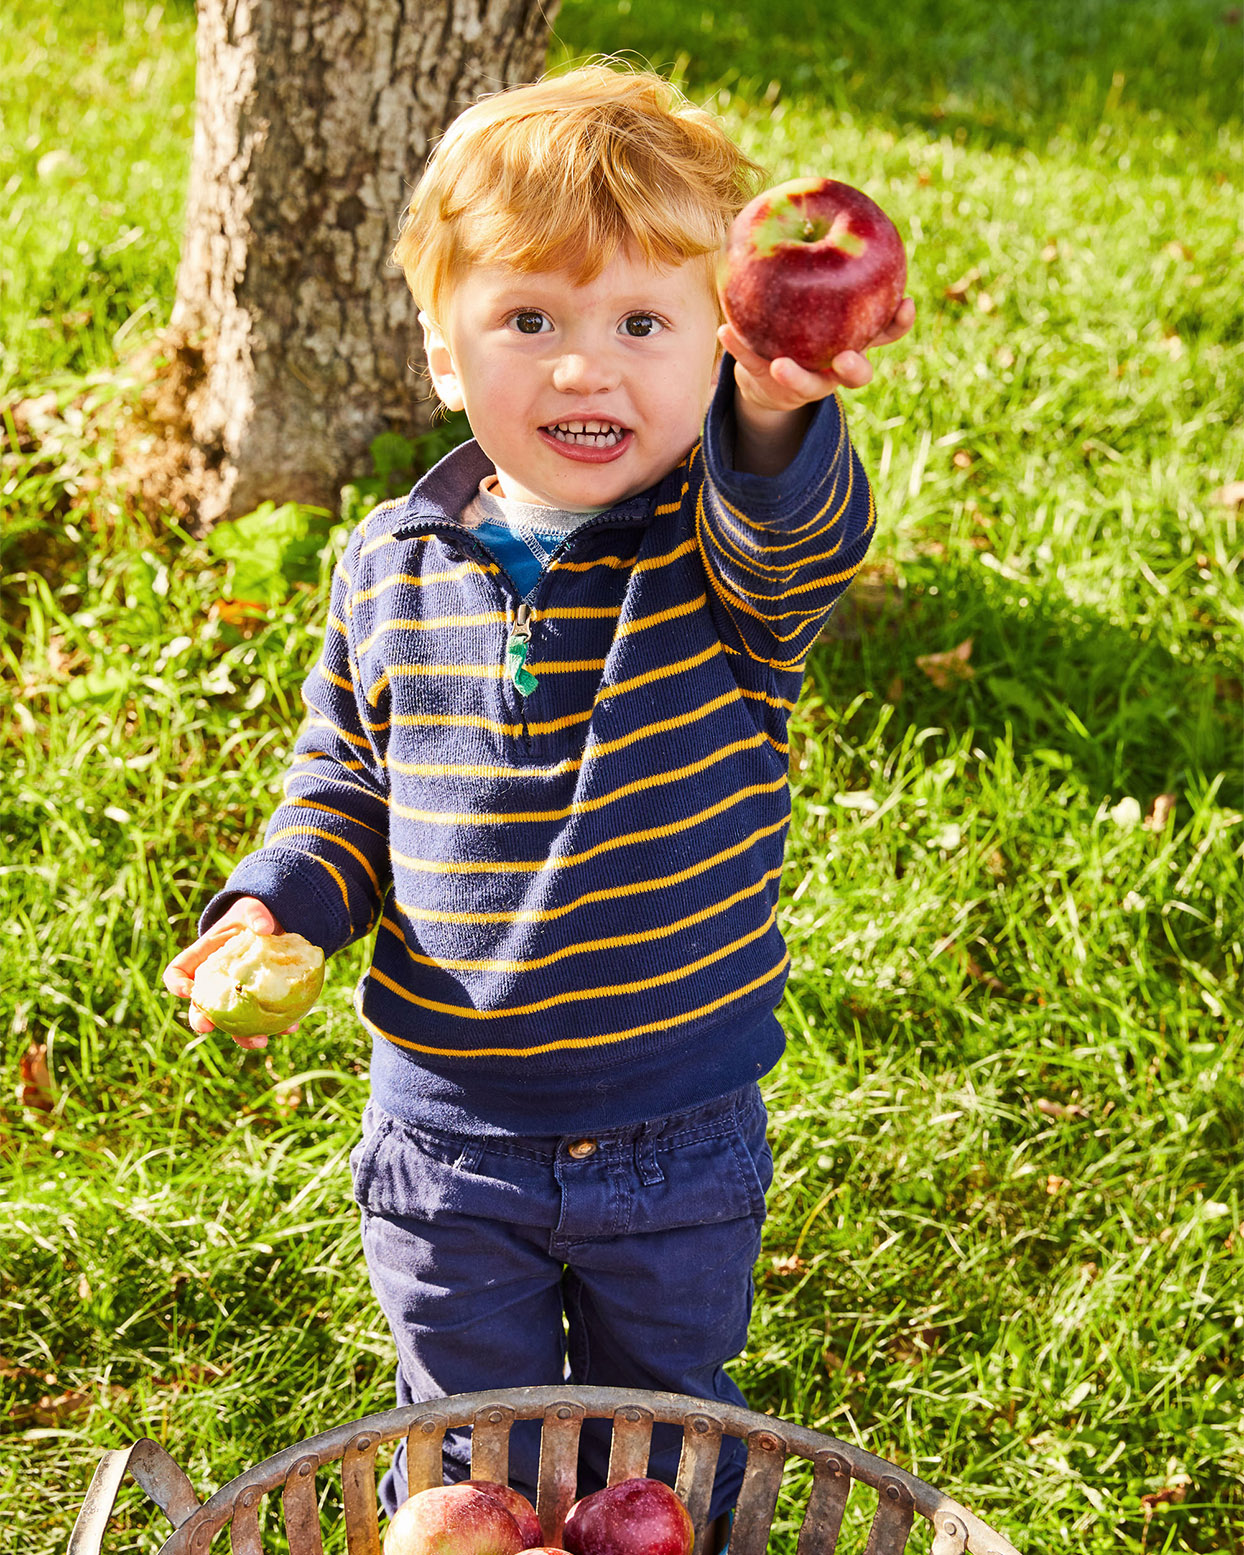 little boy holding apple to share